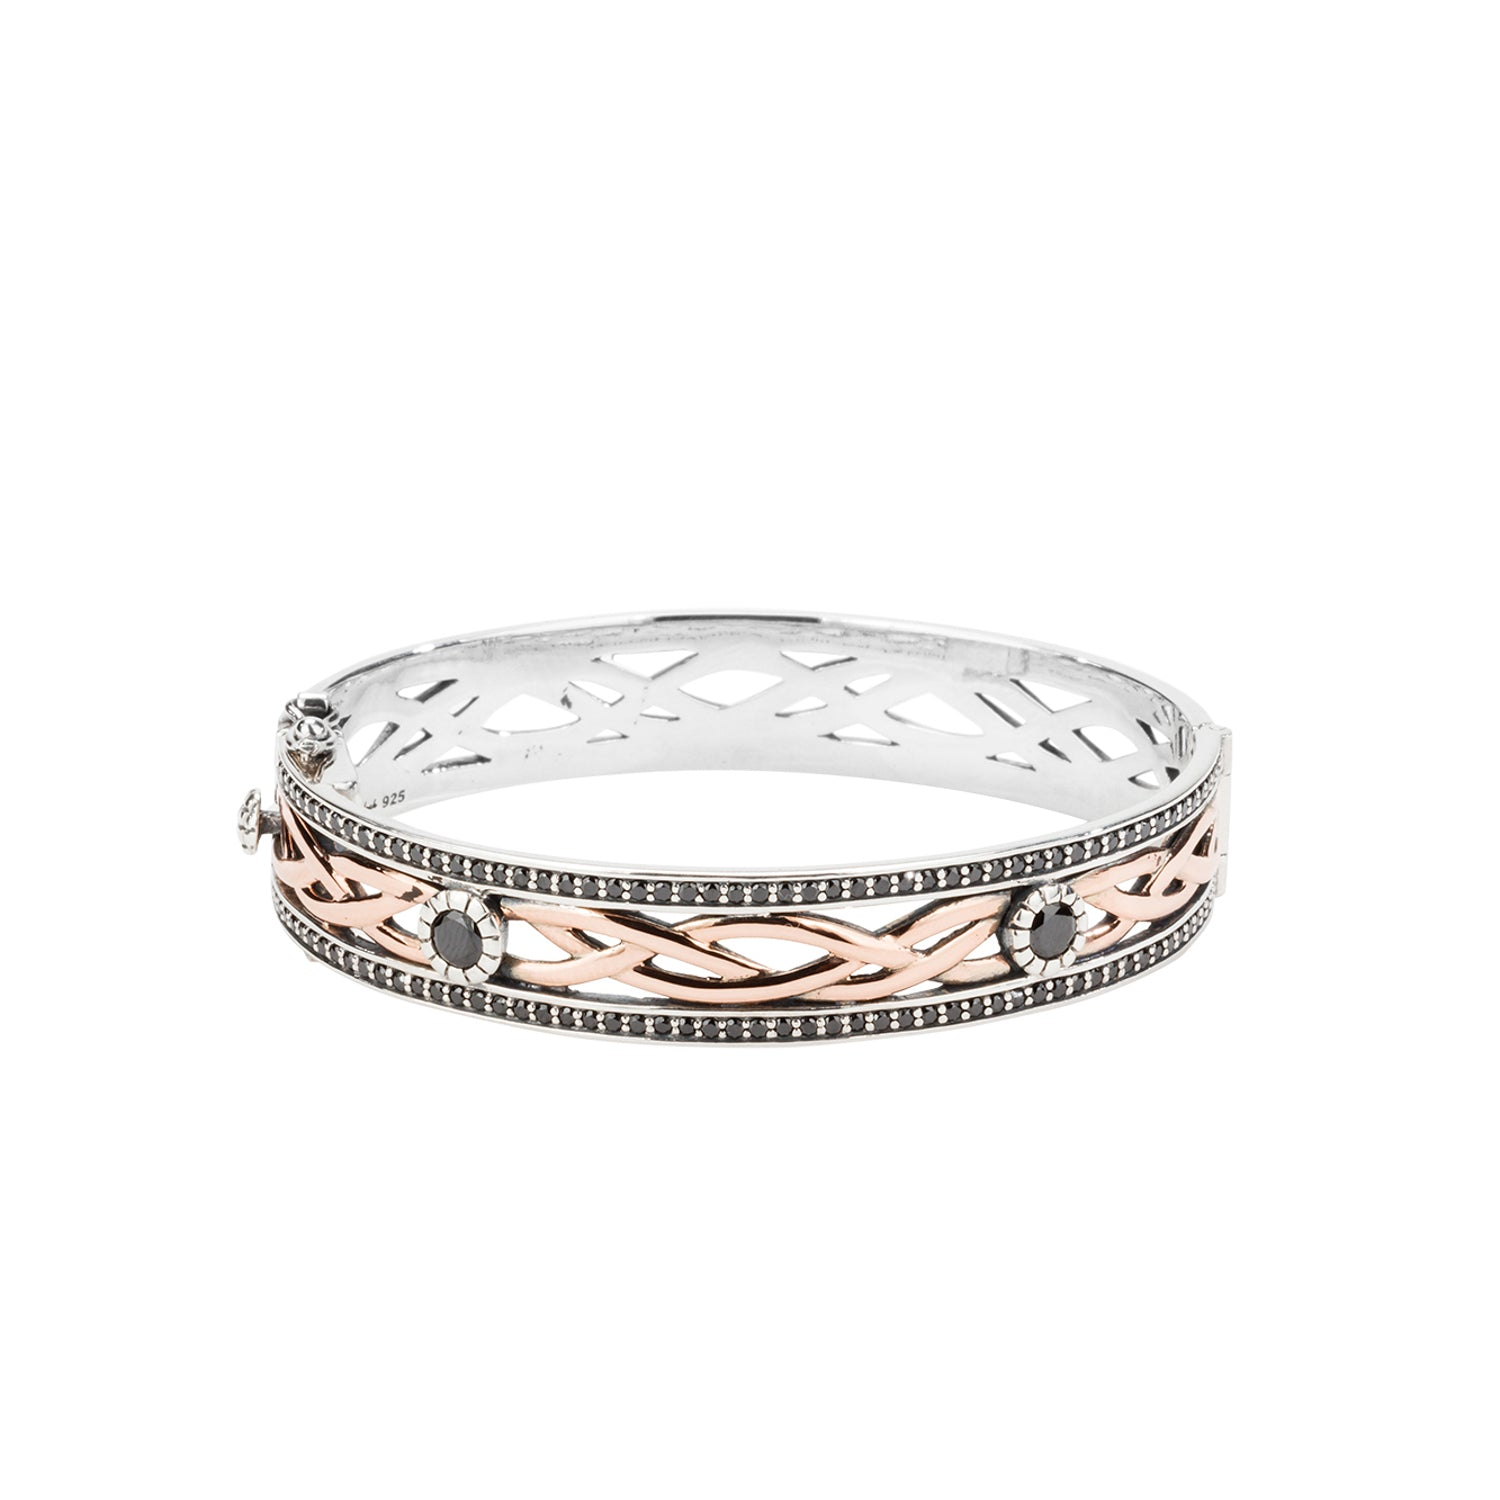 Bangle Oxidized 10k Rose Black CZ Brave Heart Bangle from welch and company jewelers near syracuse ny